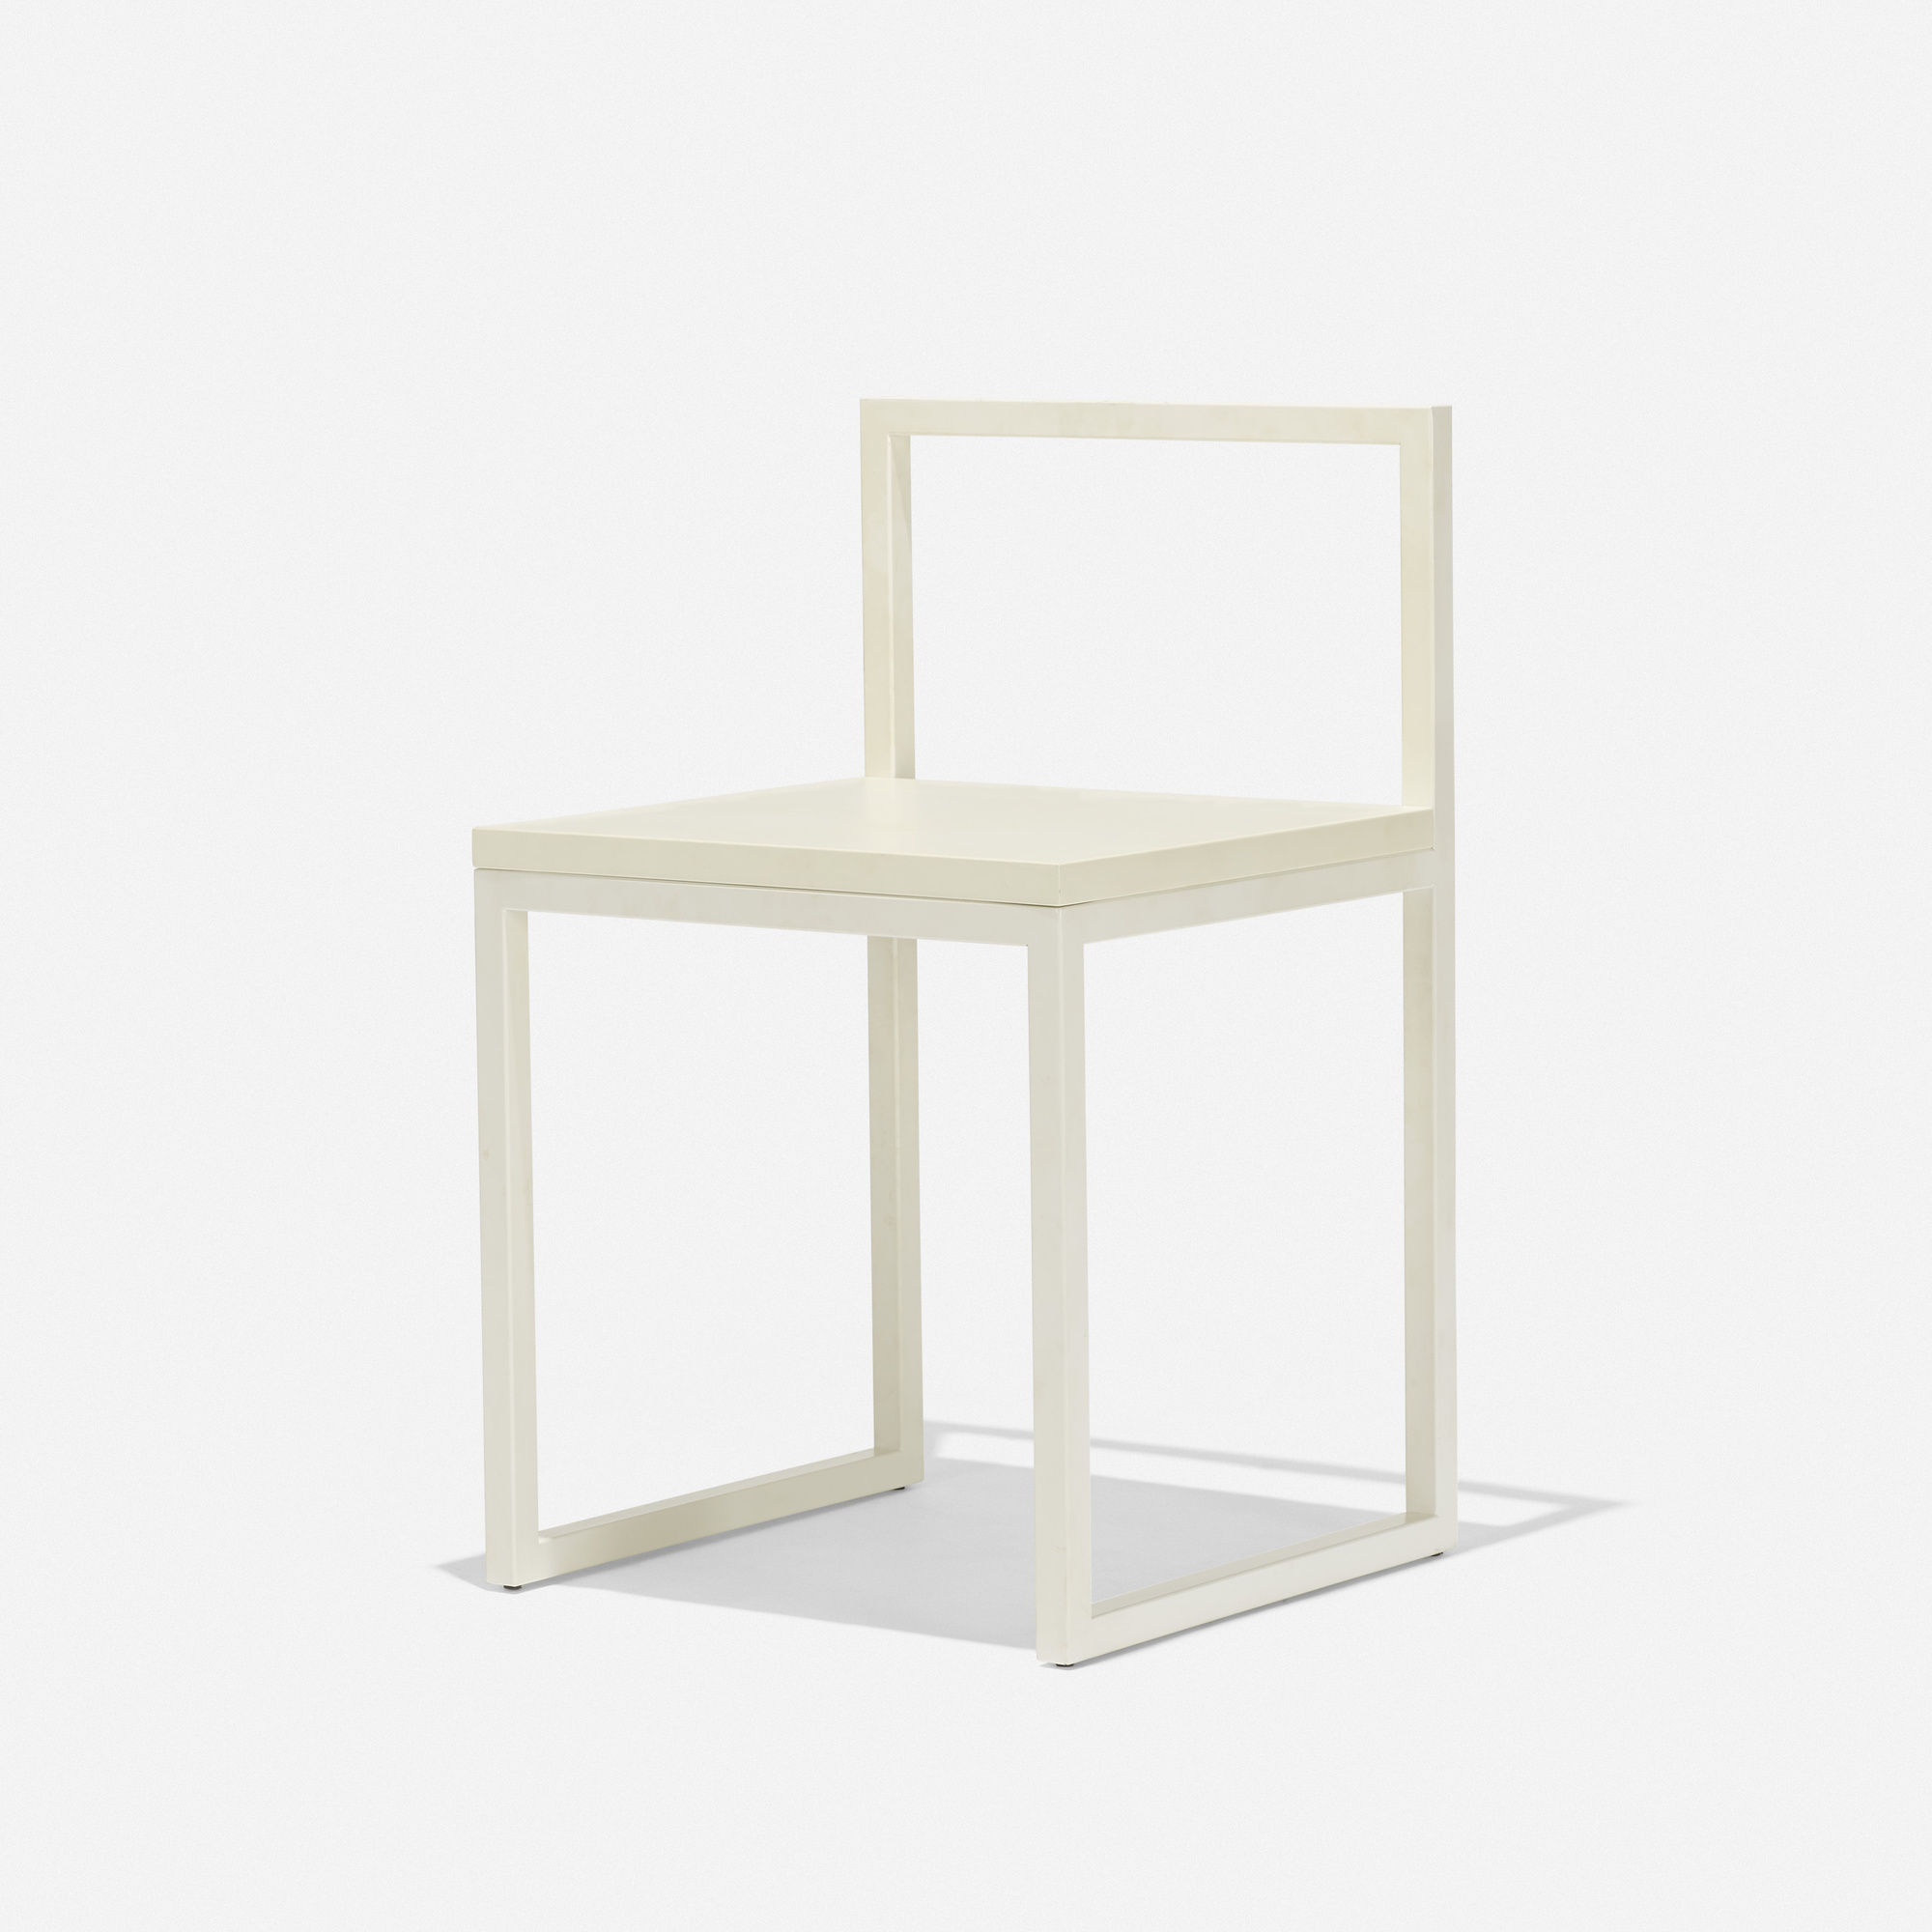 218: AG Fronzoni / 64 Chair (1 of 3)